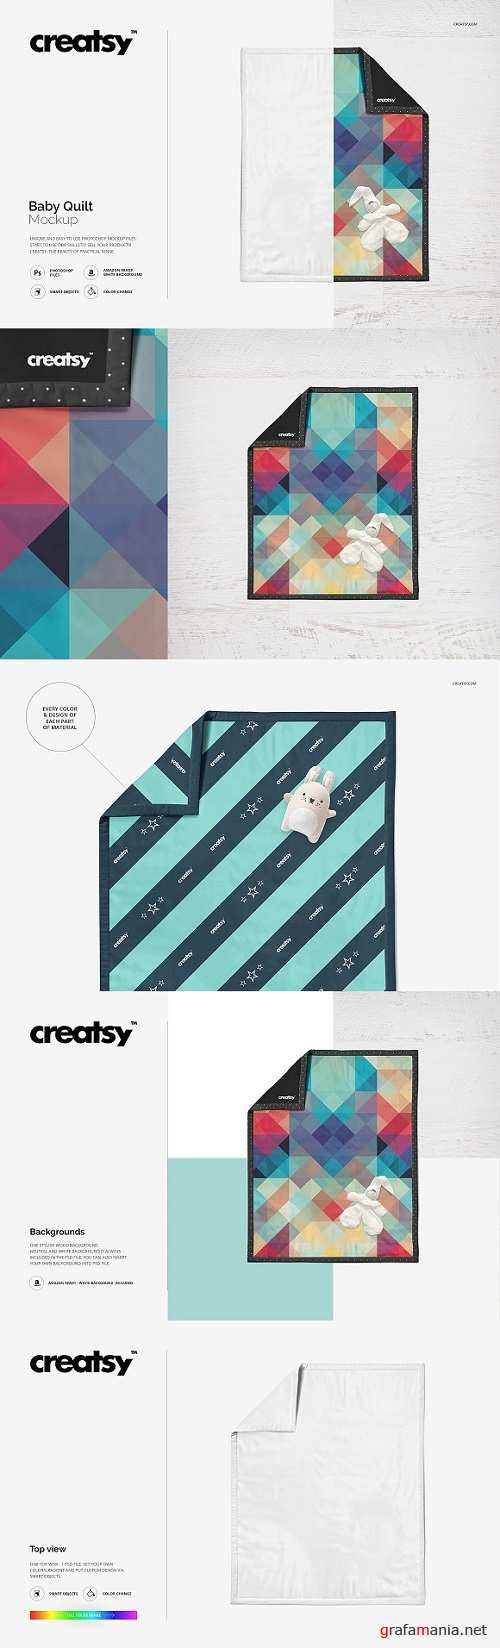 Baby Quilt Mockup 1633585